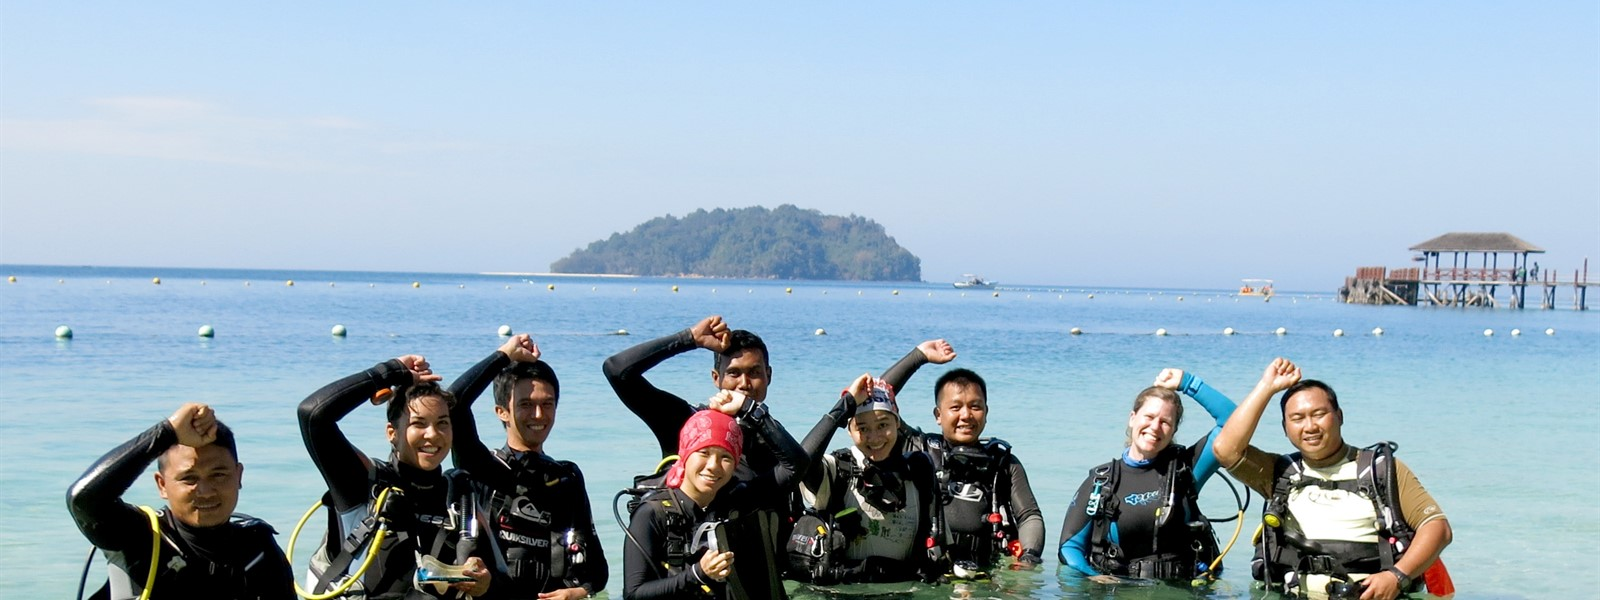 Picture of the Green Fins Malaysia team in scuba gear on a boat.